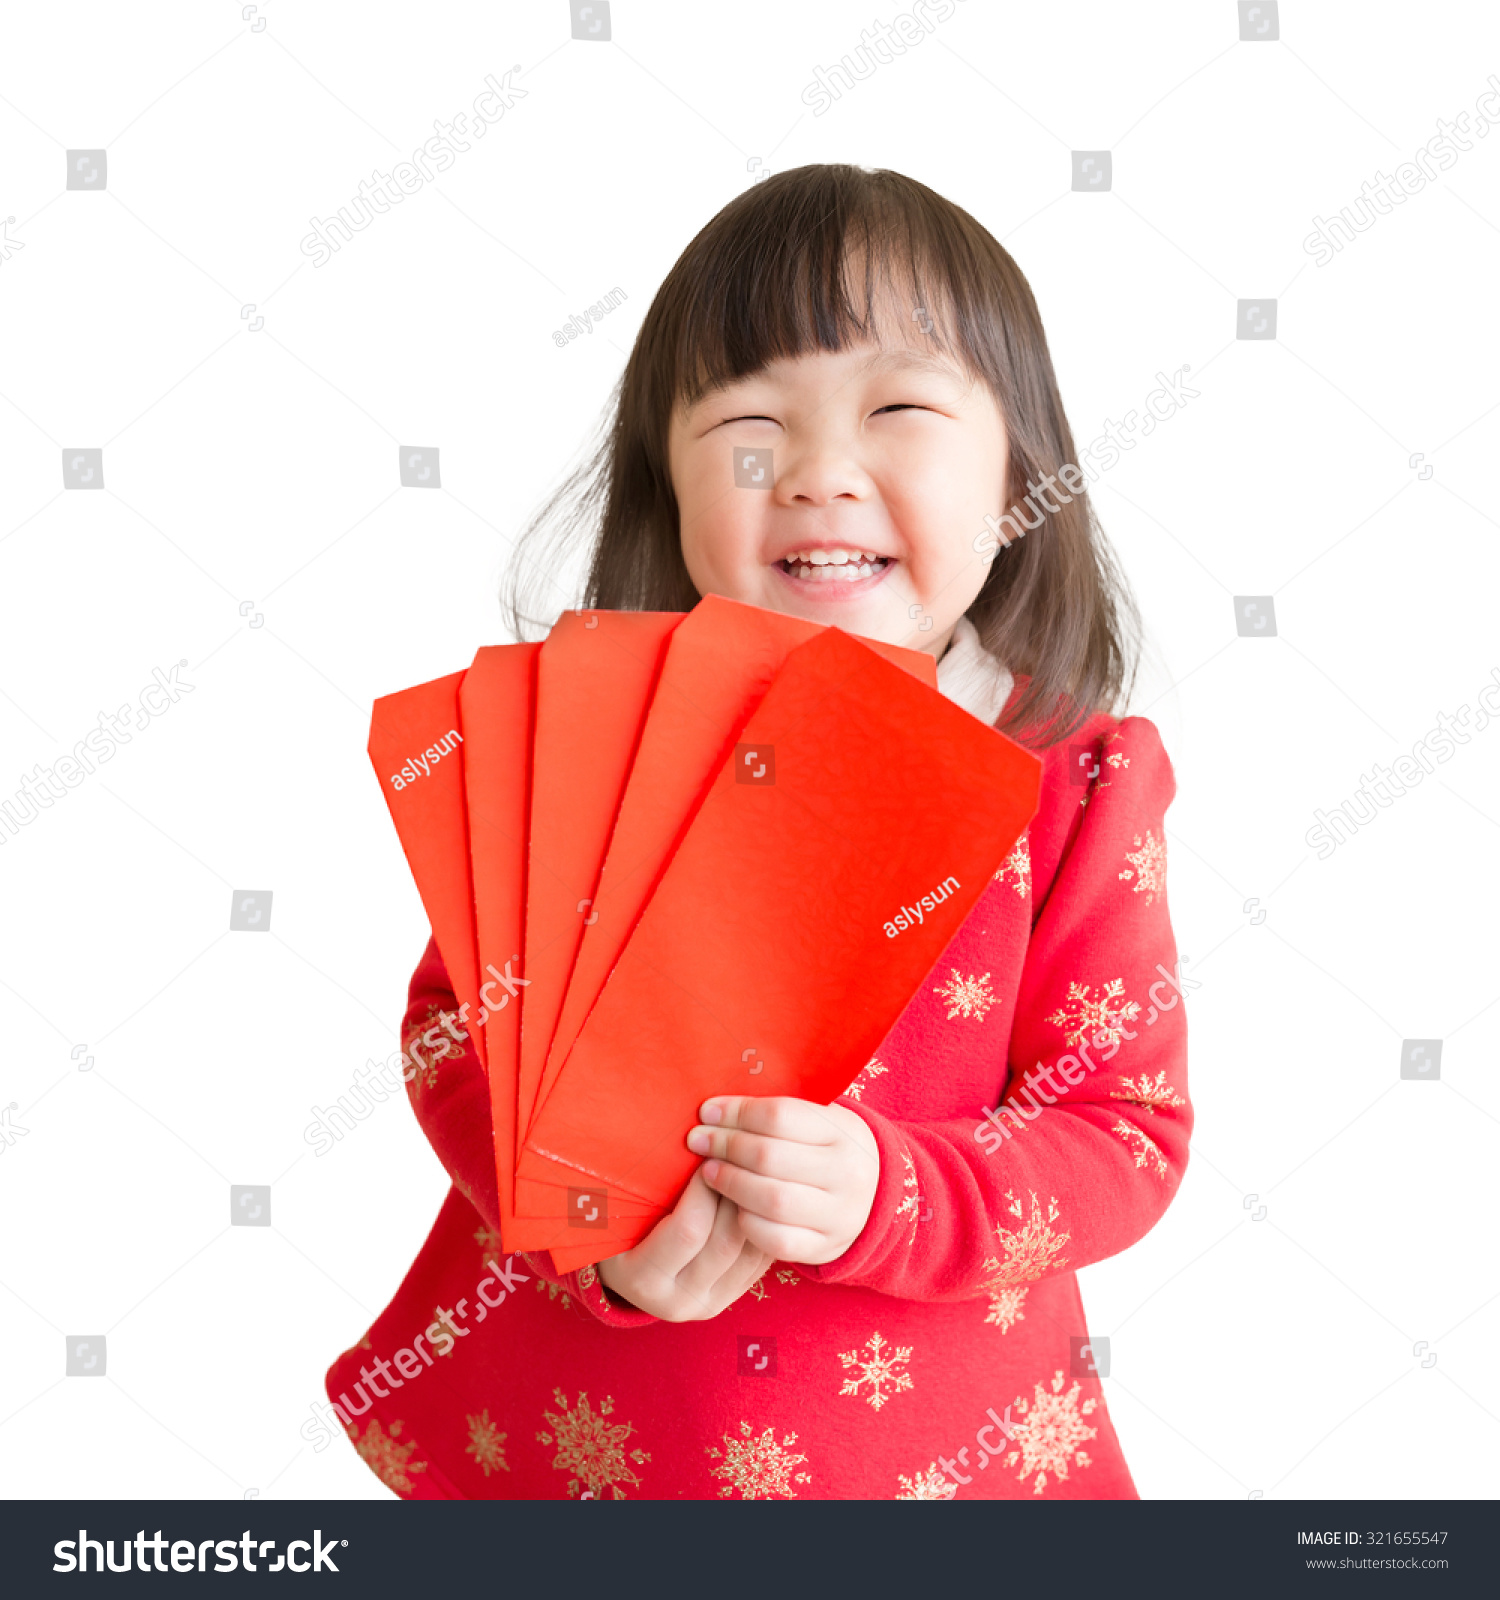 happy chinese new year smile asian girl holding red envelope isolated on white background